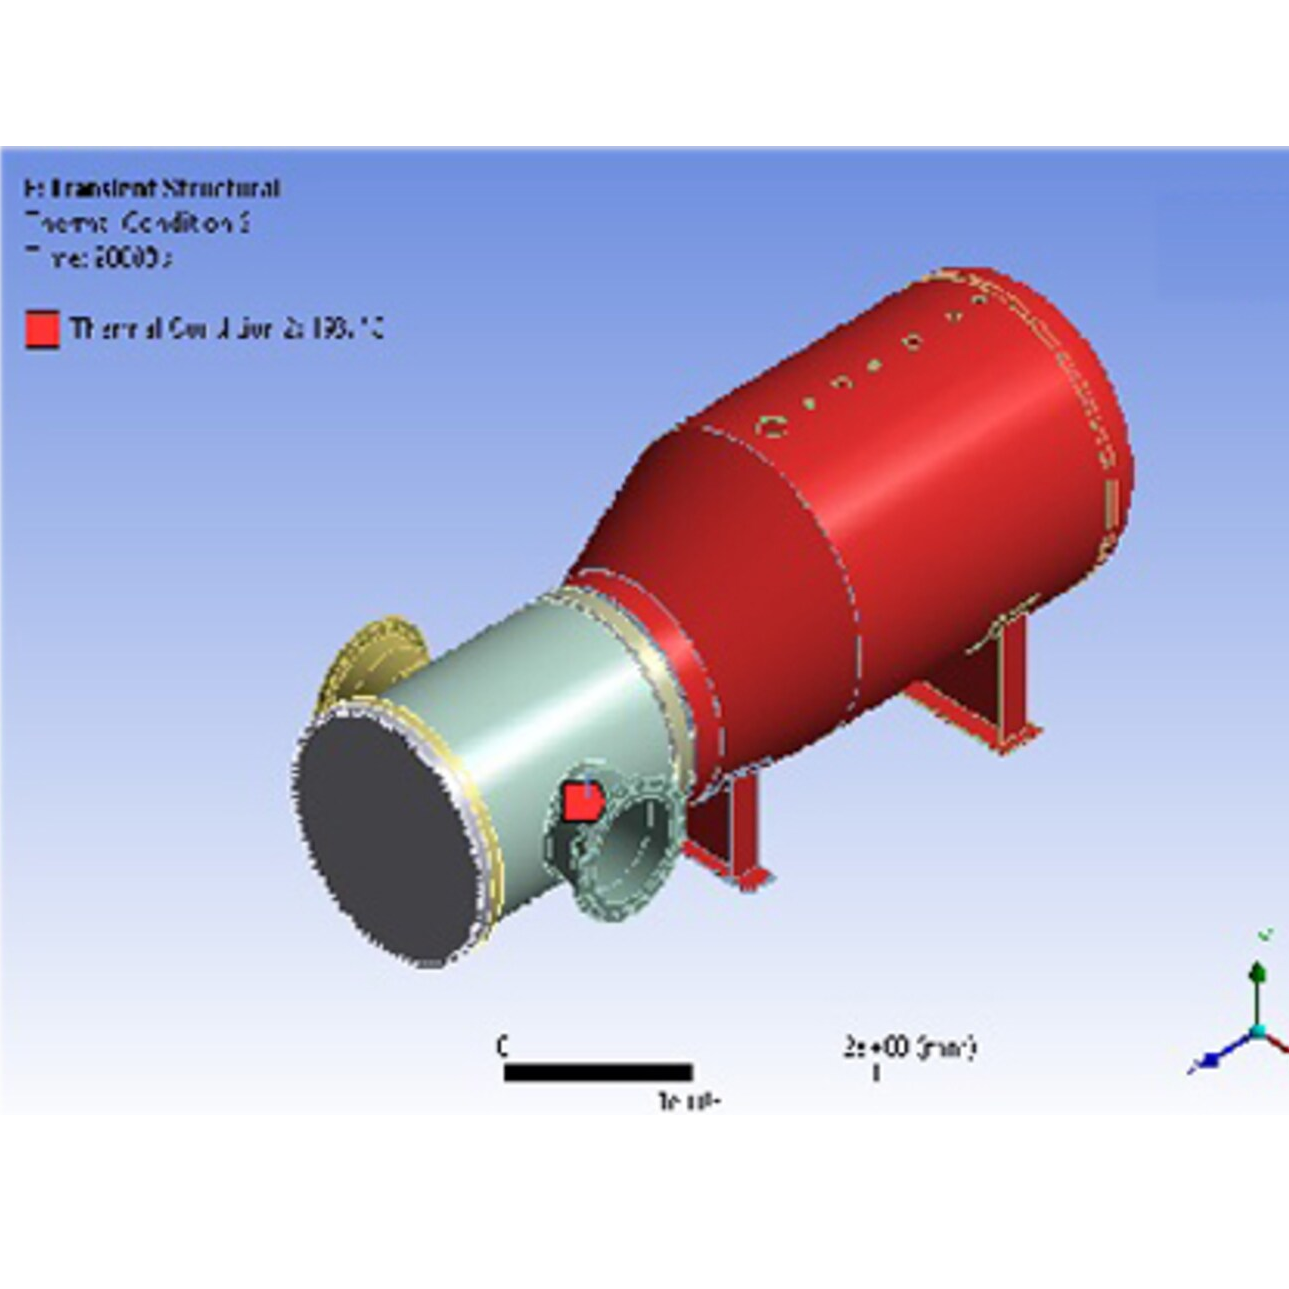 finite element analysis consultancy, FEA consulting services